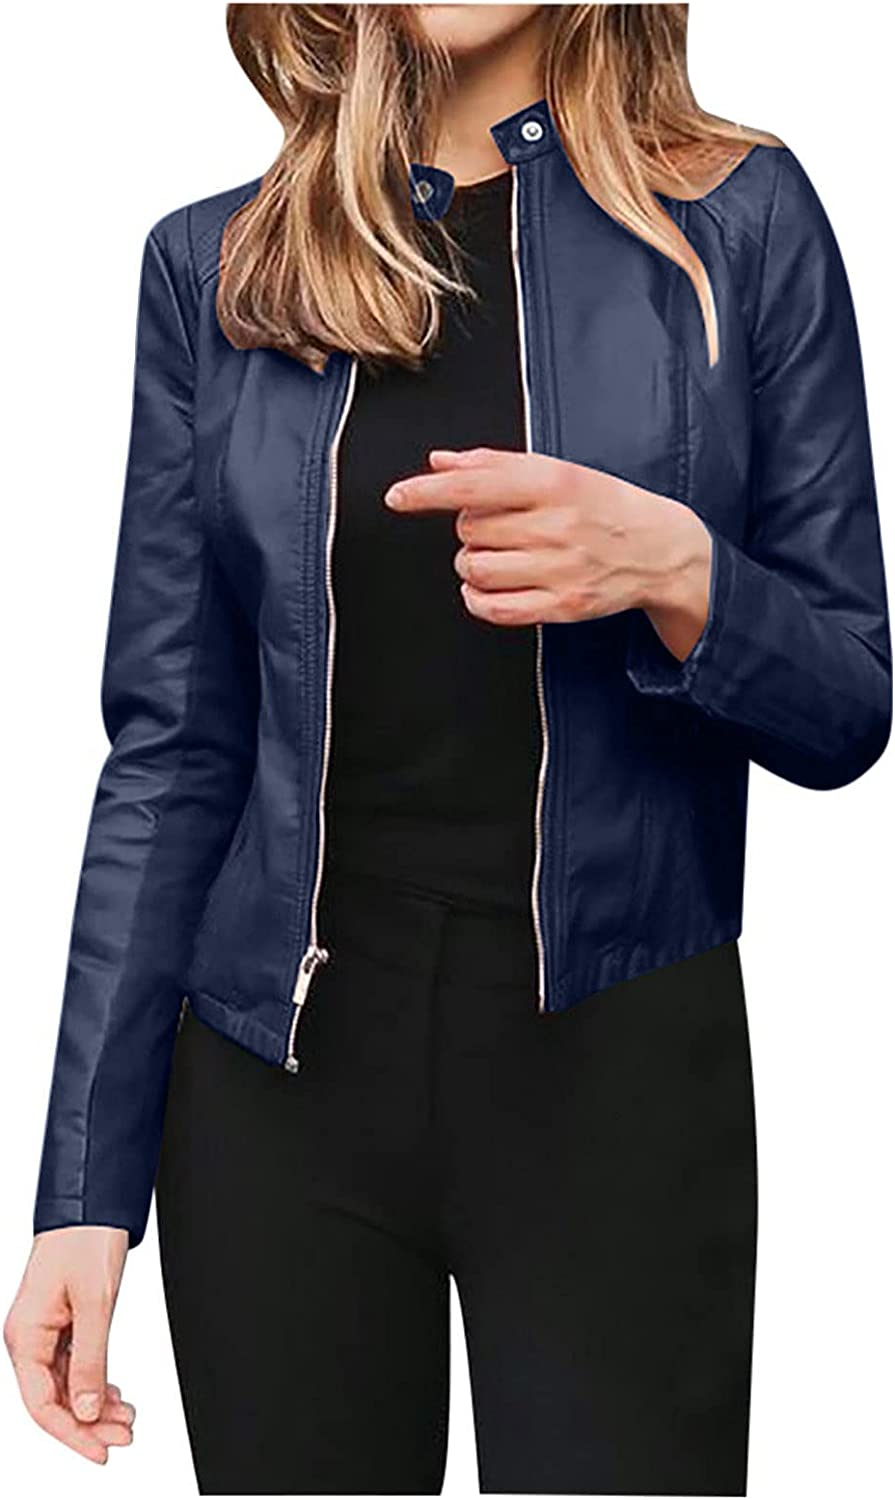 Womens Pu Leather Jacket Open Front Long Sleeve Cardigan Stand Collar Moto Coat Slim Fit Basic Solid Color Tops